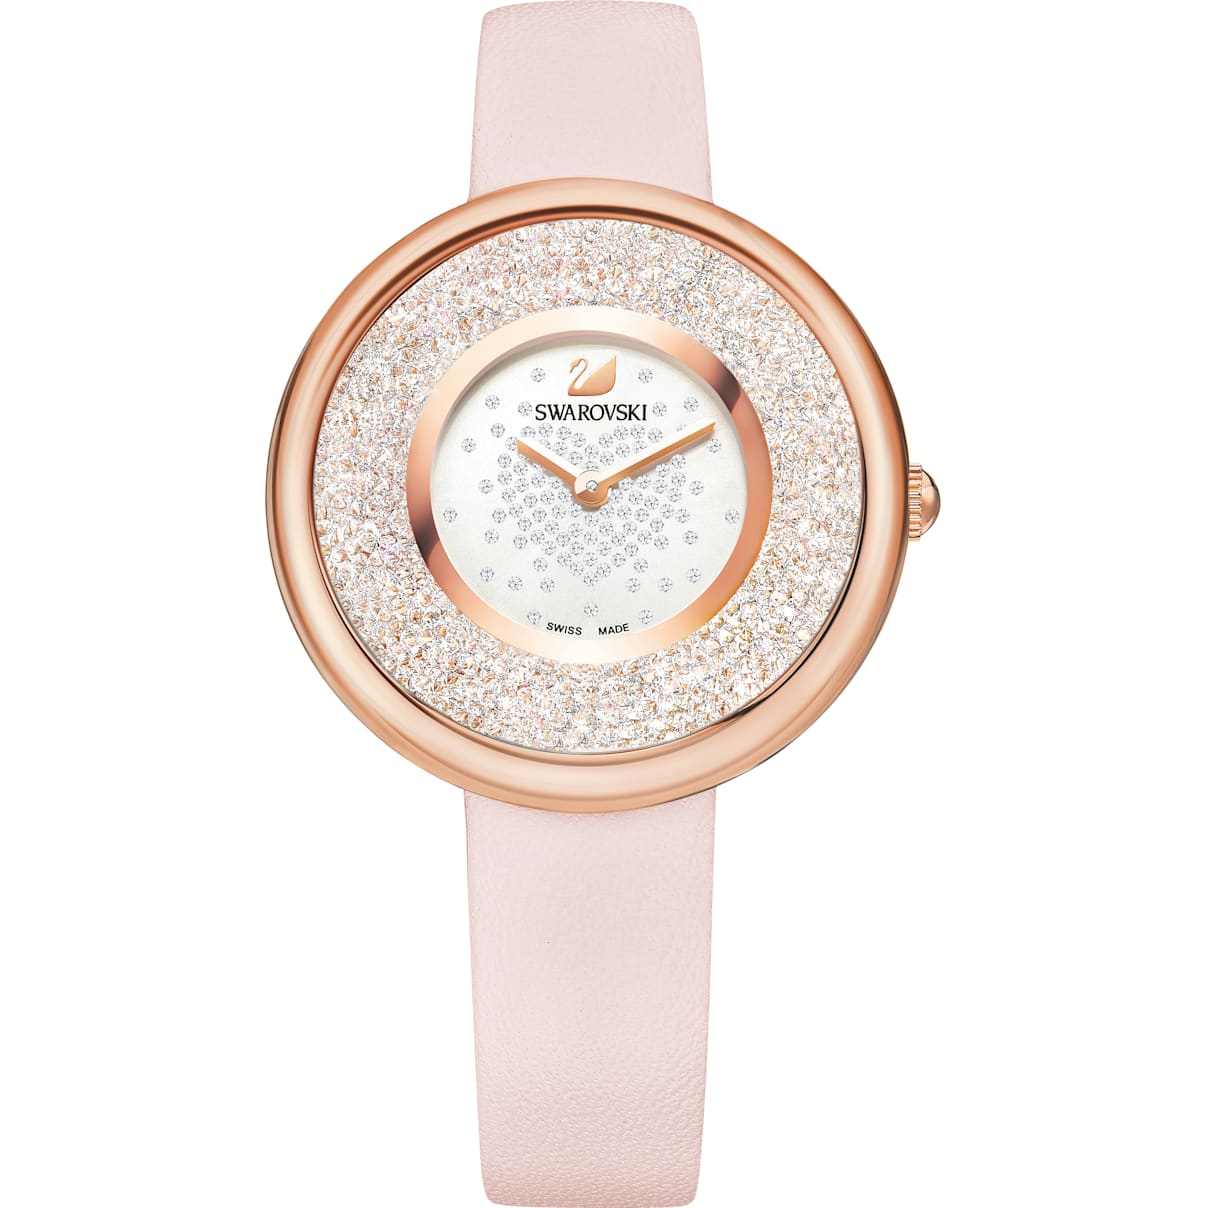 Swarovski Crystalline Pure Watch, Leather strap, Pink, Rose-gold tone PVD